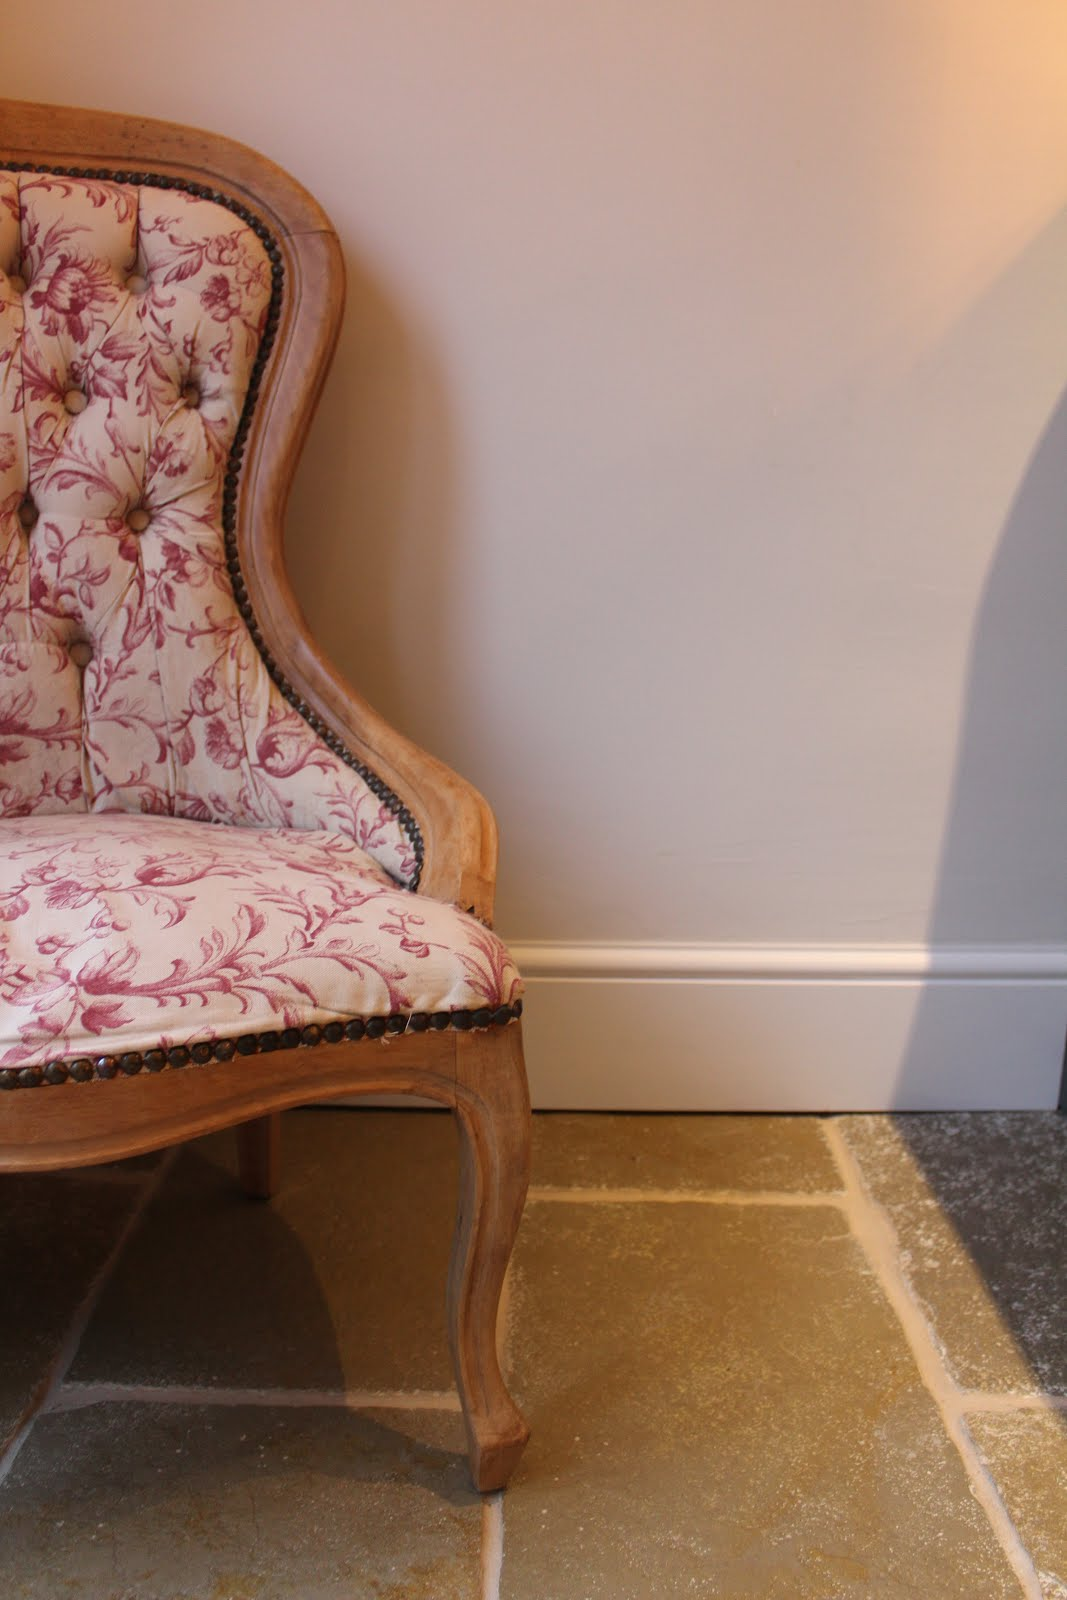 Skirting Boards with Limestone Floor